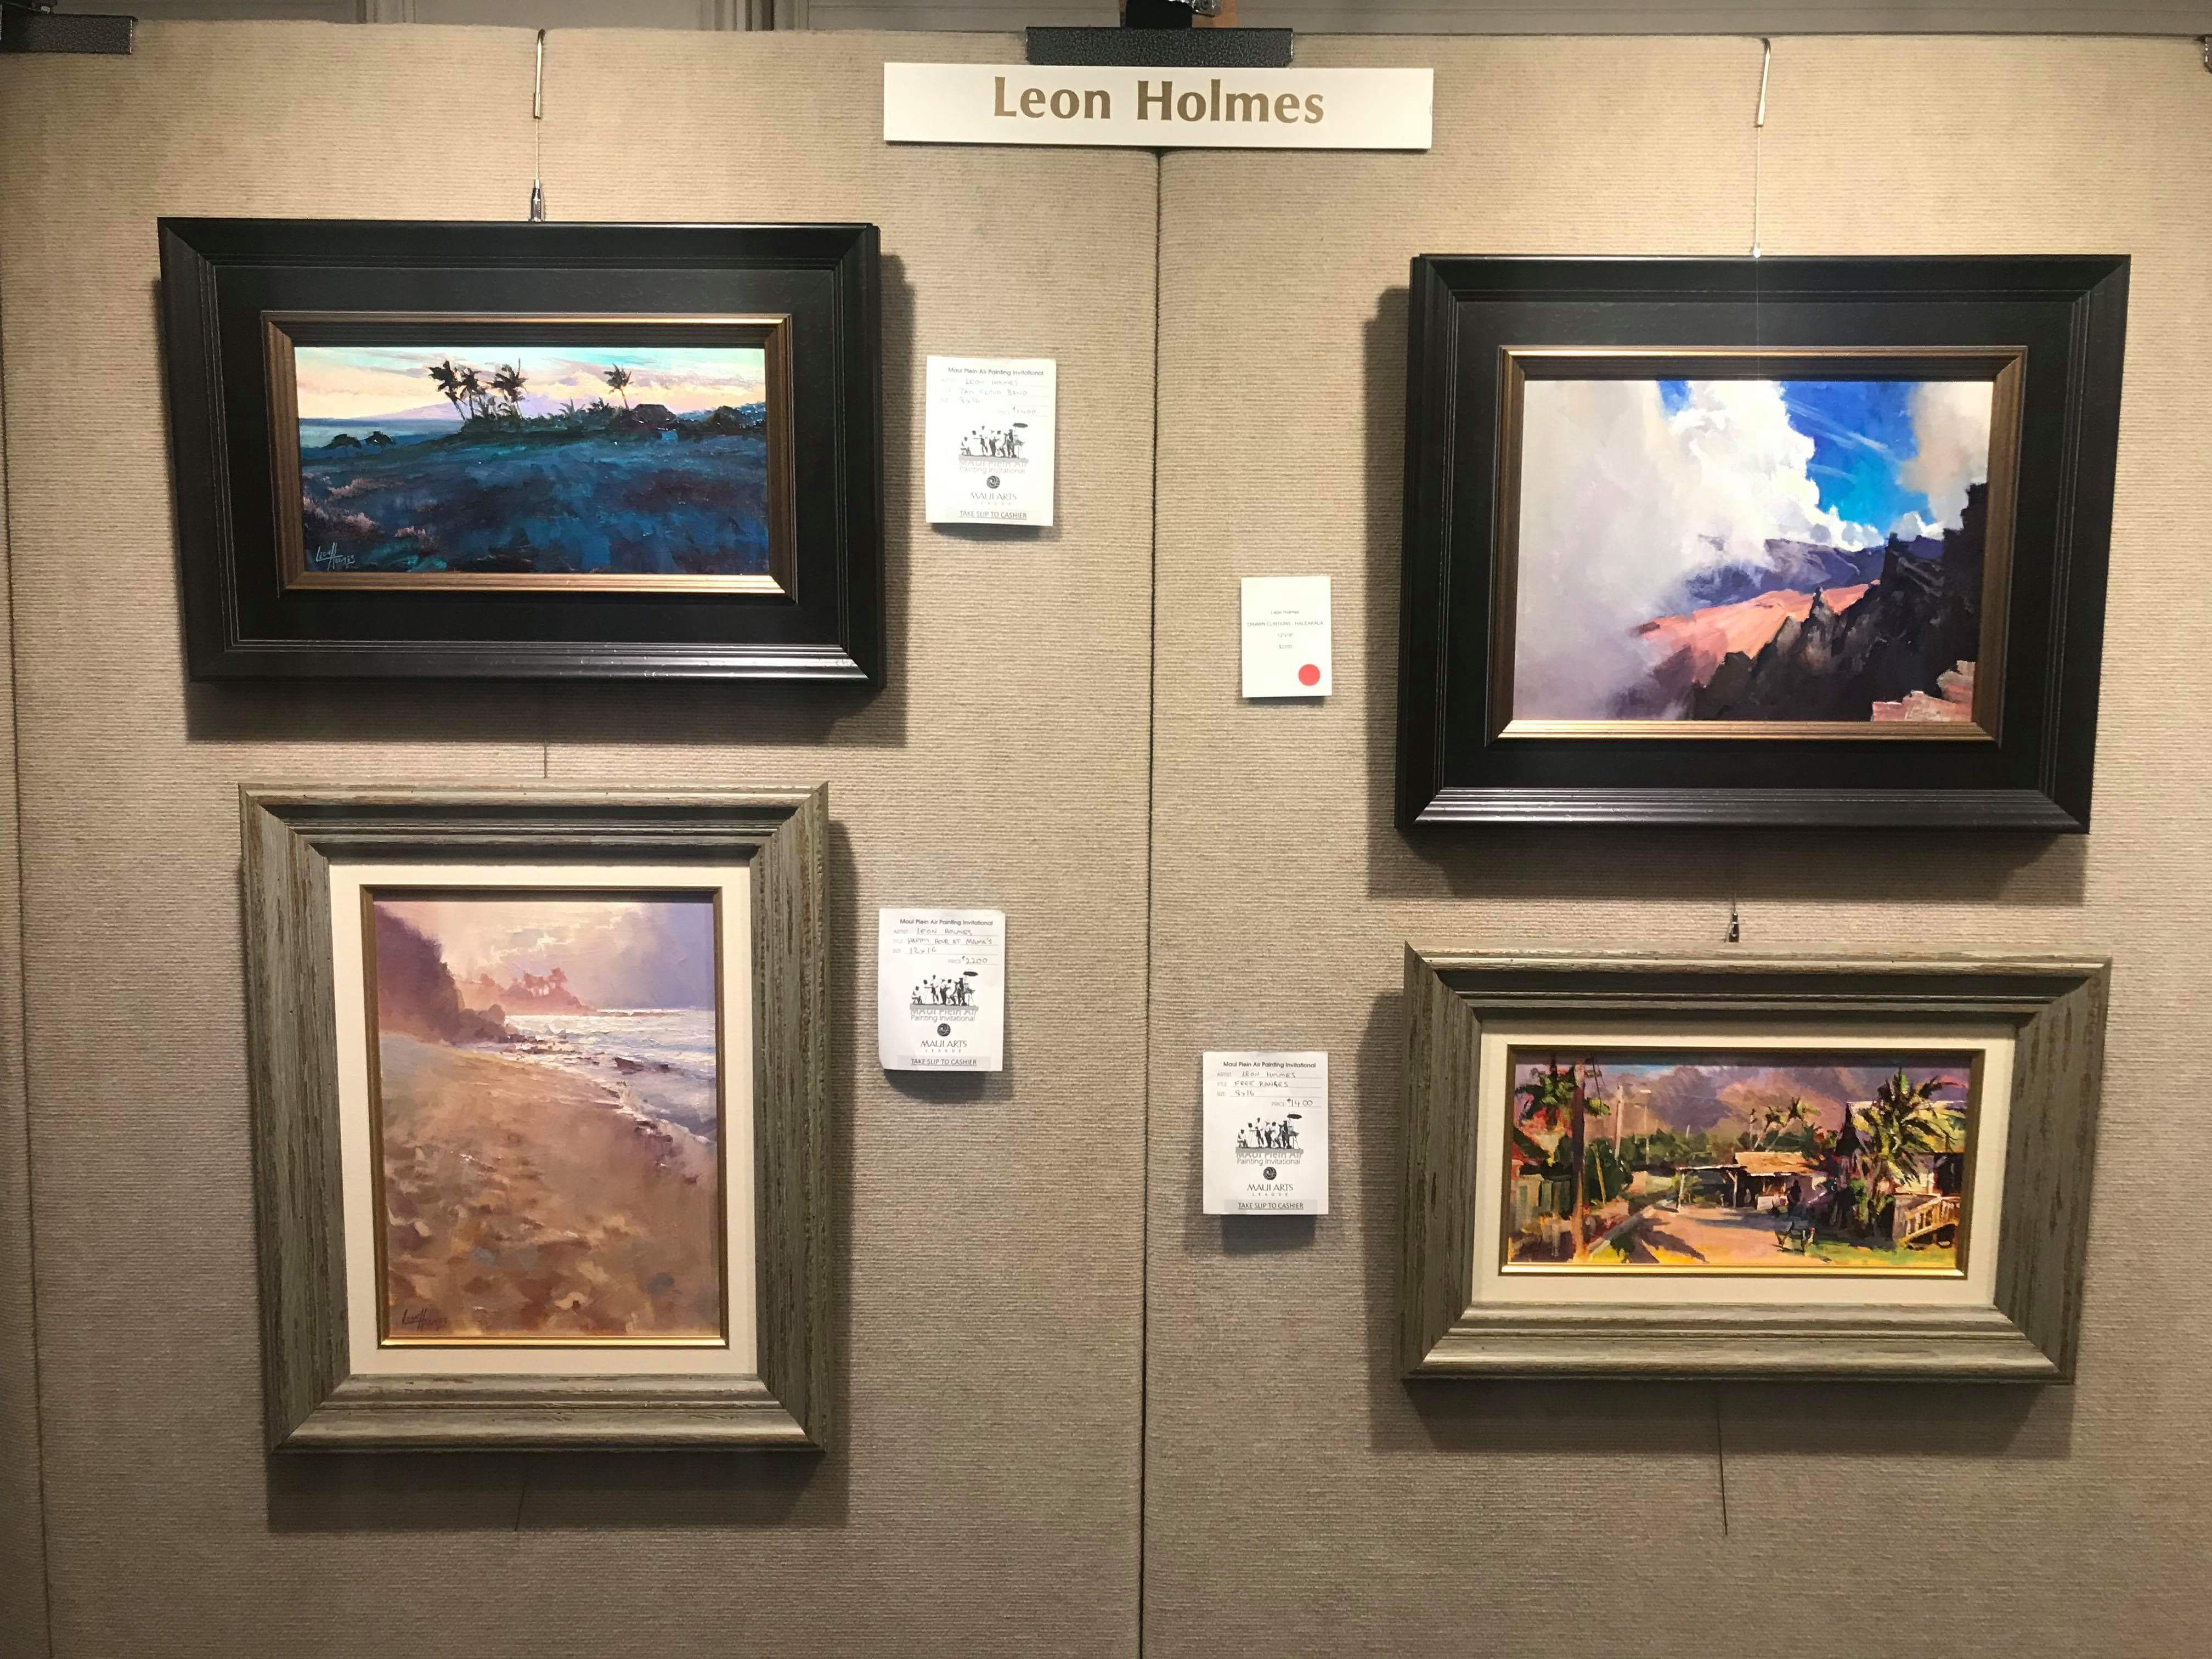 Four best paintings for Gala - Leon Holmes